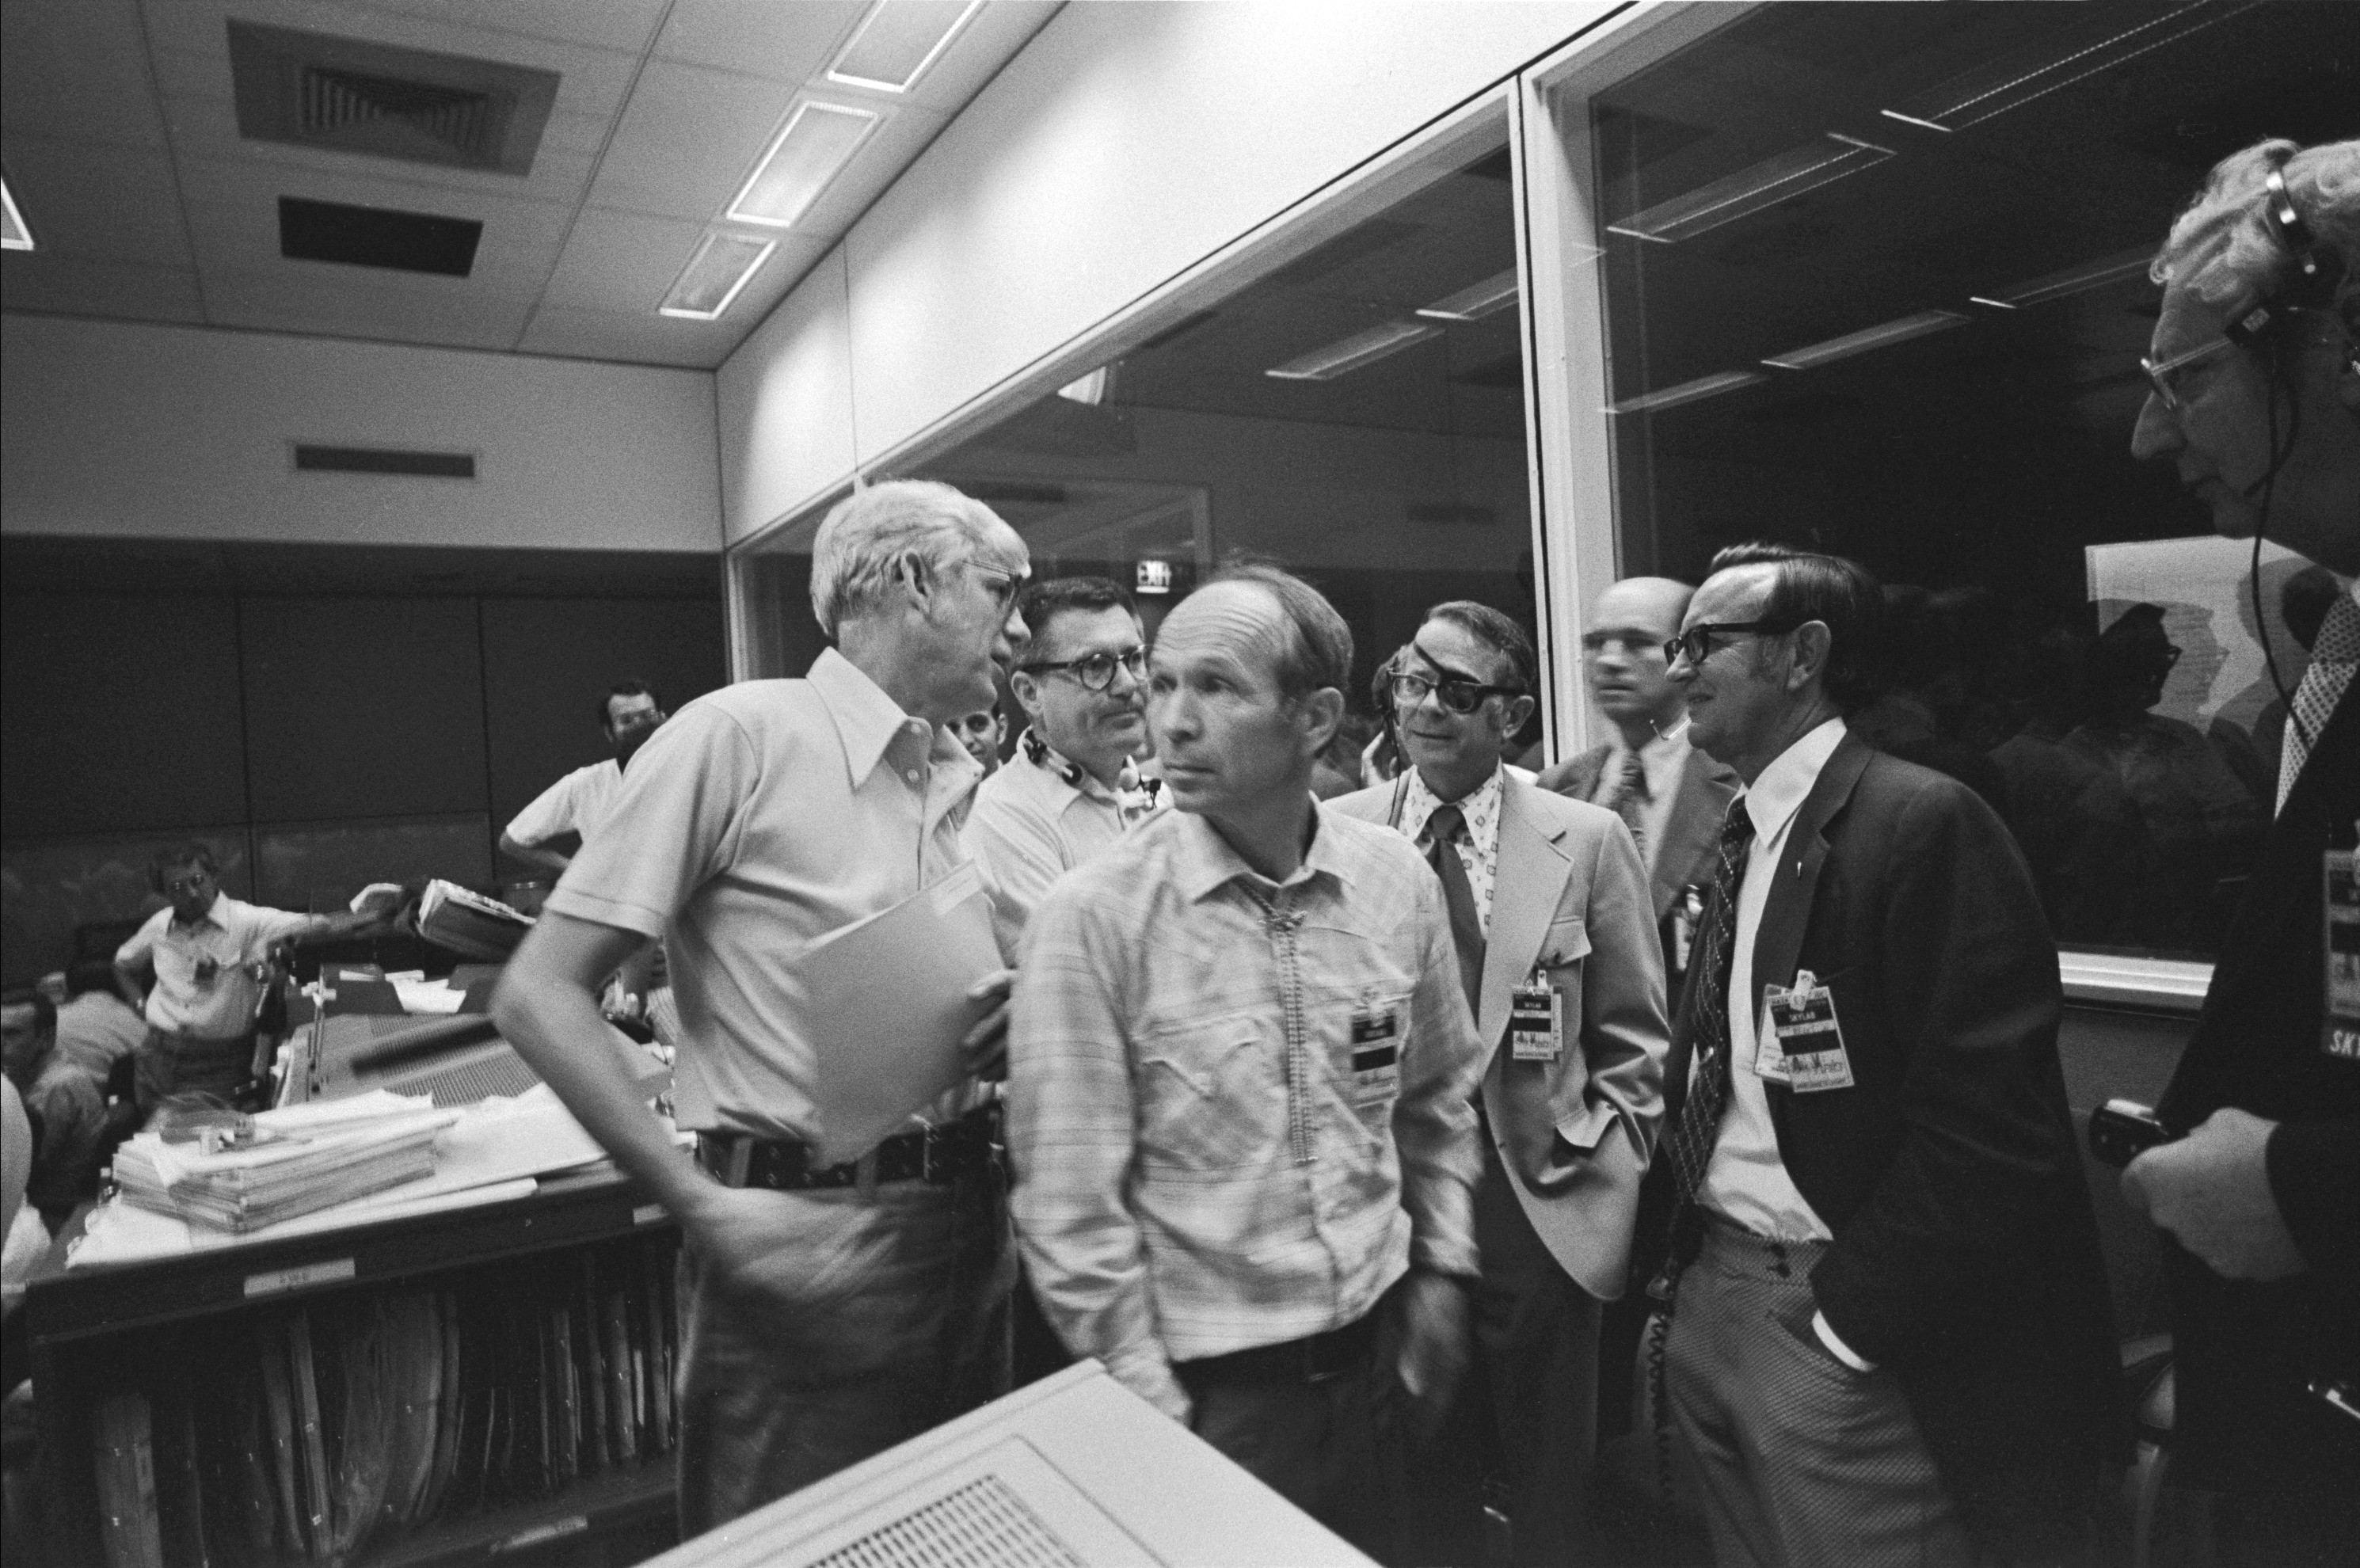 At the Johnson Space Center (JSC) Mission Operations Control Center, NASA officials discuss the problems with the micrometeroid shield on Skylab. From left to right, they include Jack Kinzler, whose Skylab sunshield solution earned him the NASA Distinguished Service Medal, along with William Schneider, Maxim Faget, Dale Myers, JSC Director Chris Kraft, and Kenneth Kleinknecht. Credit: NASA